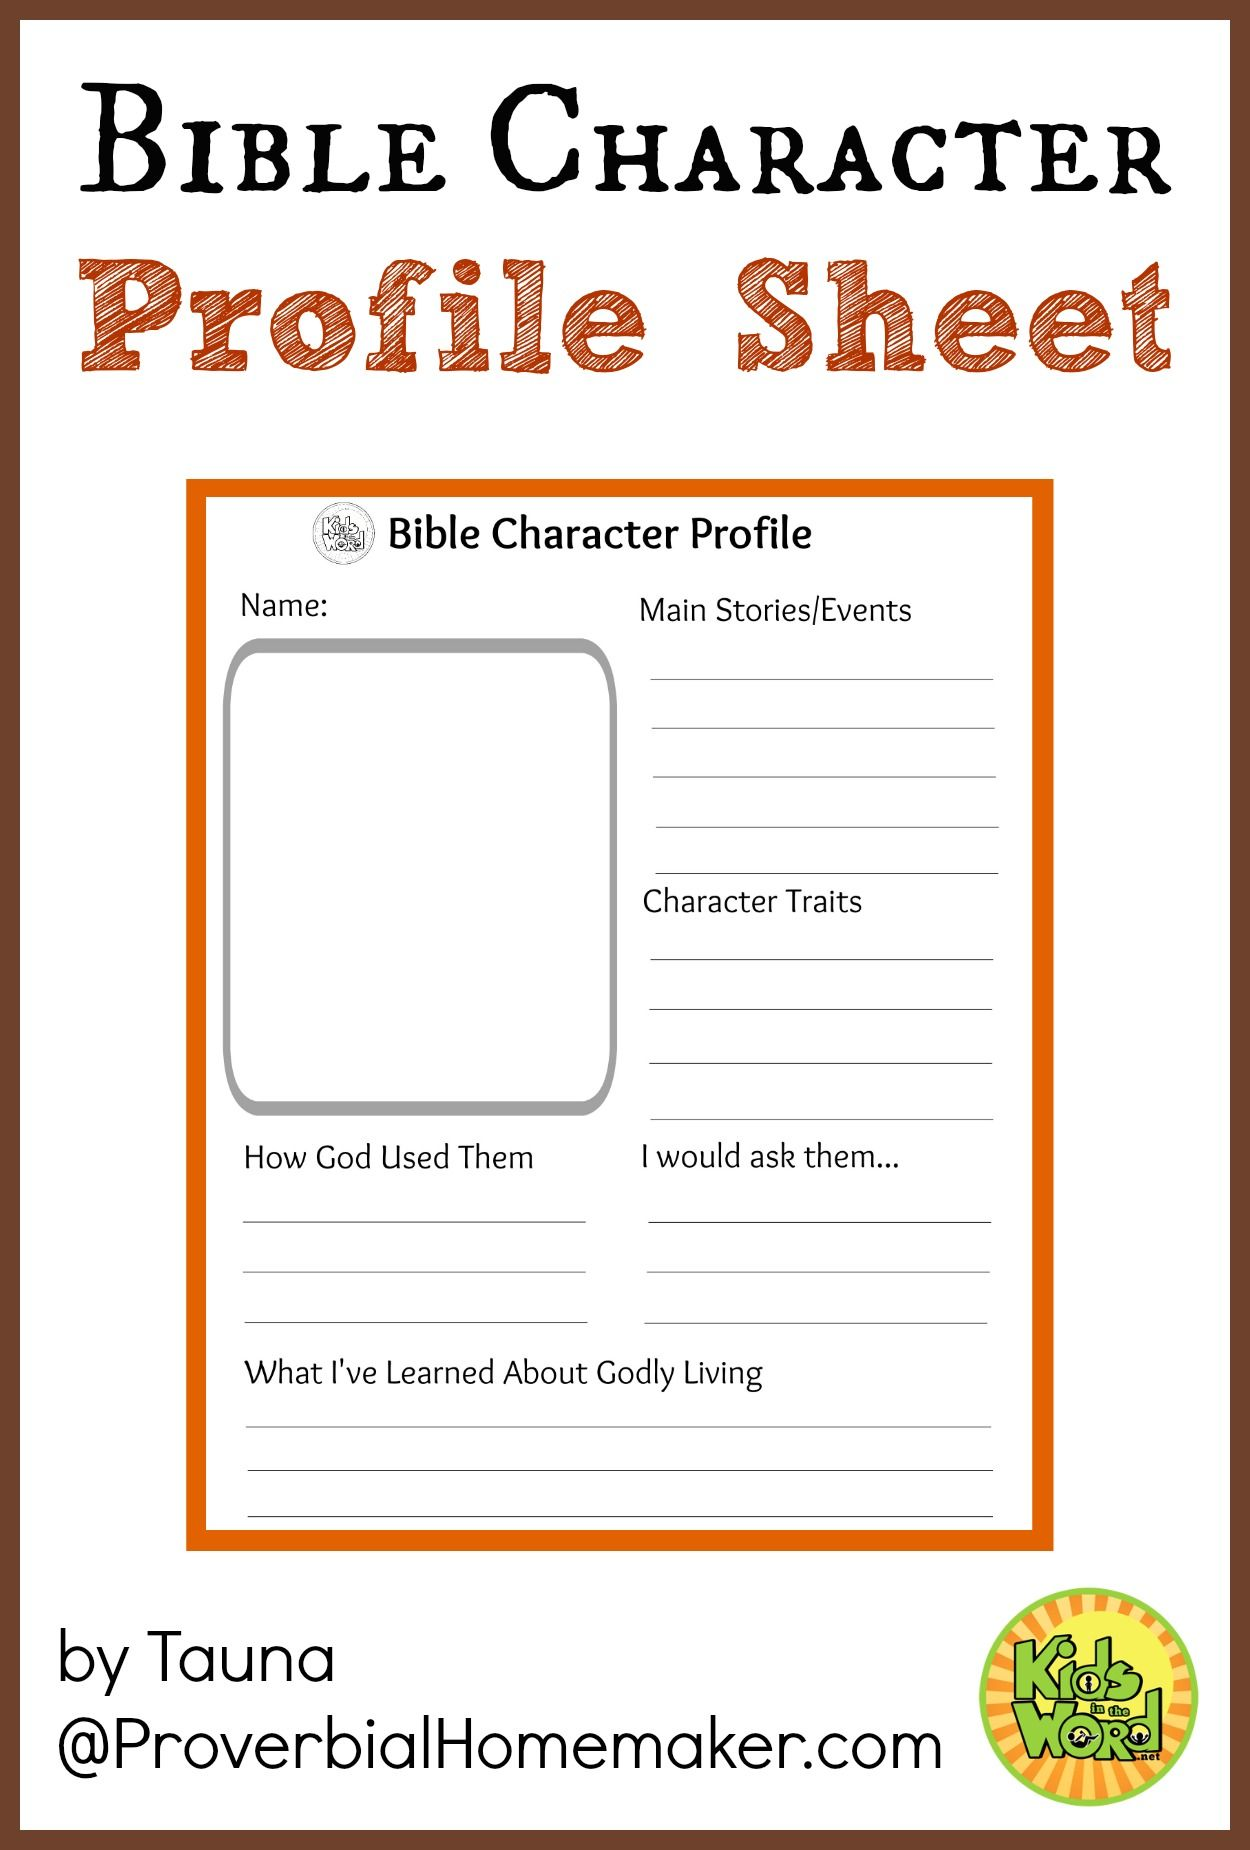 Worksheets Bible Character Study Worksheet bible character profile sheet worksheets and studying the men women of can be a powerful lesson for our kids